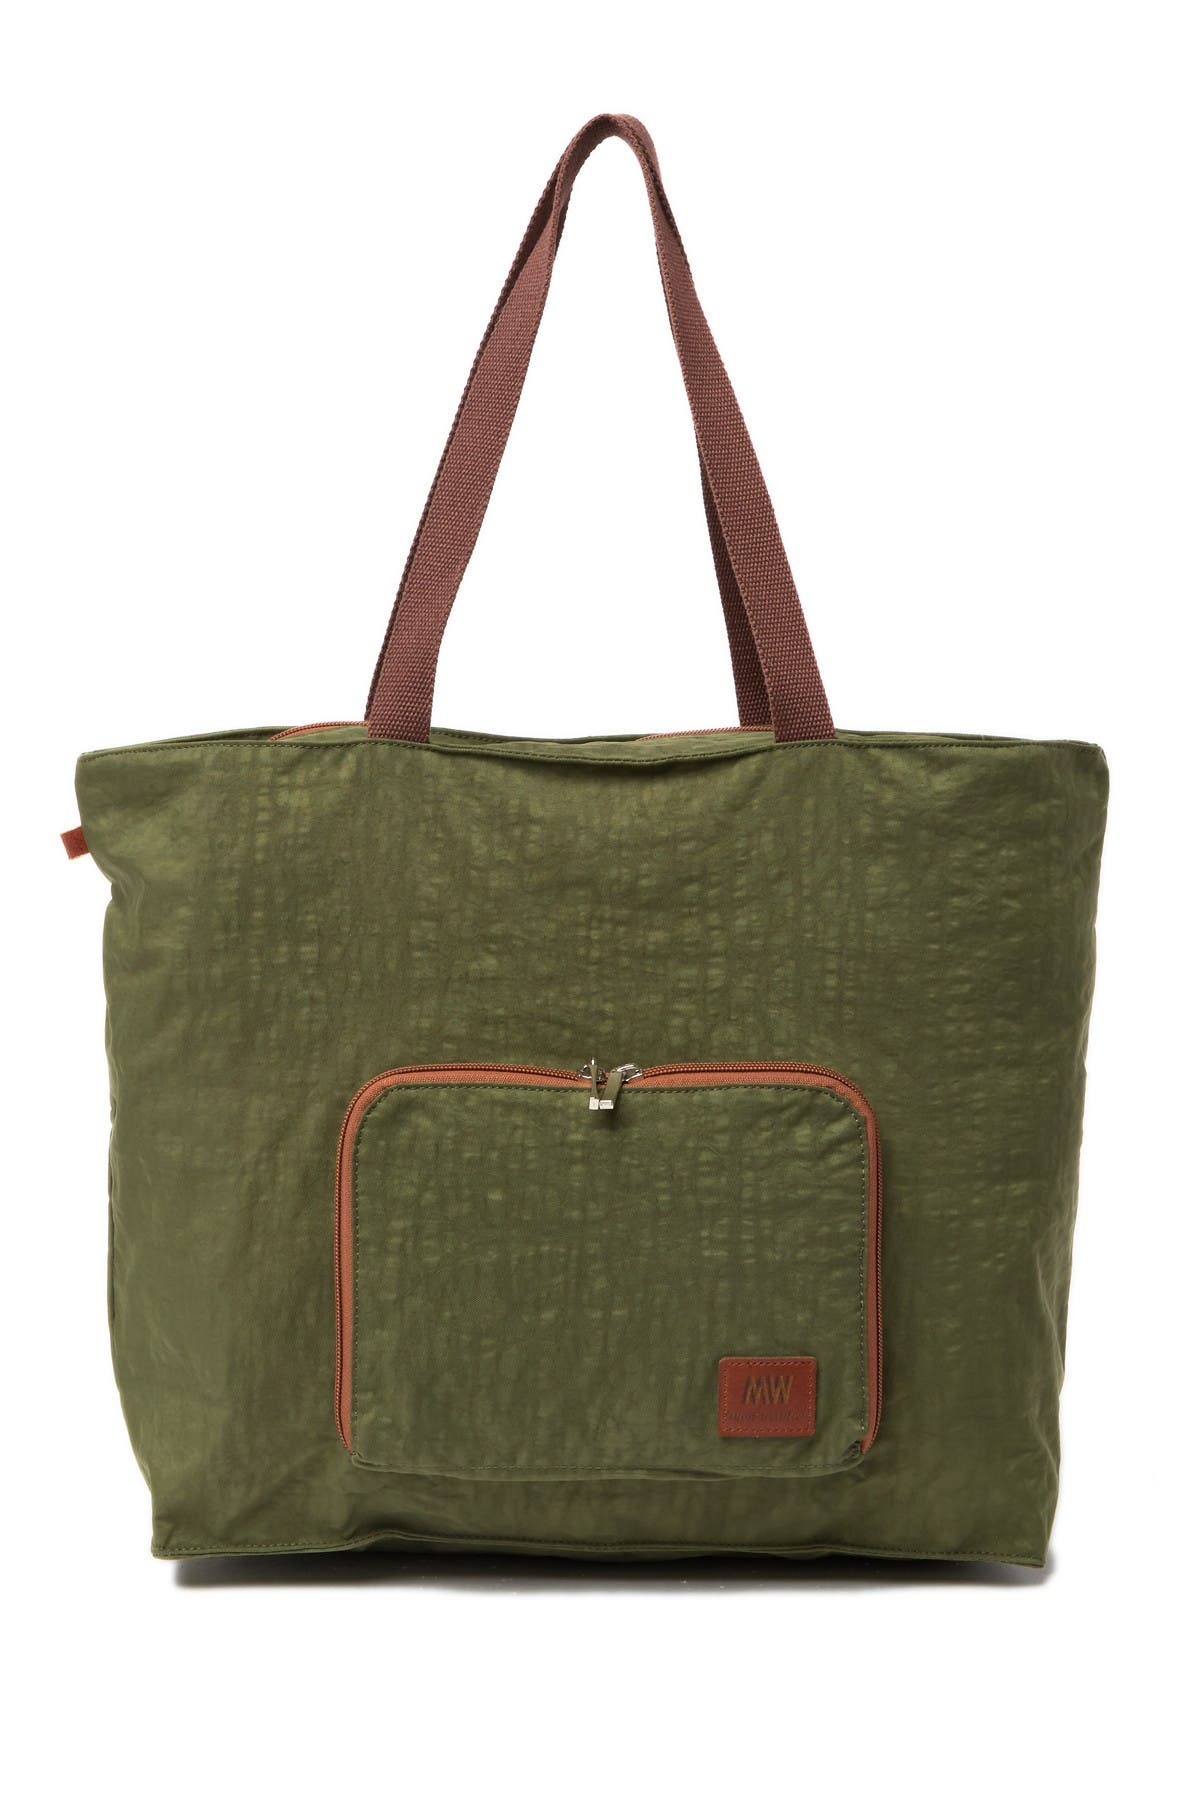 Image of Most Wanted USA The Foldable Tote Bag